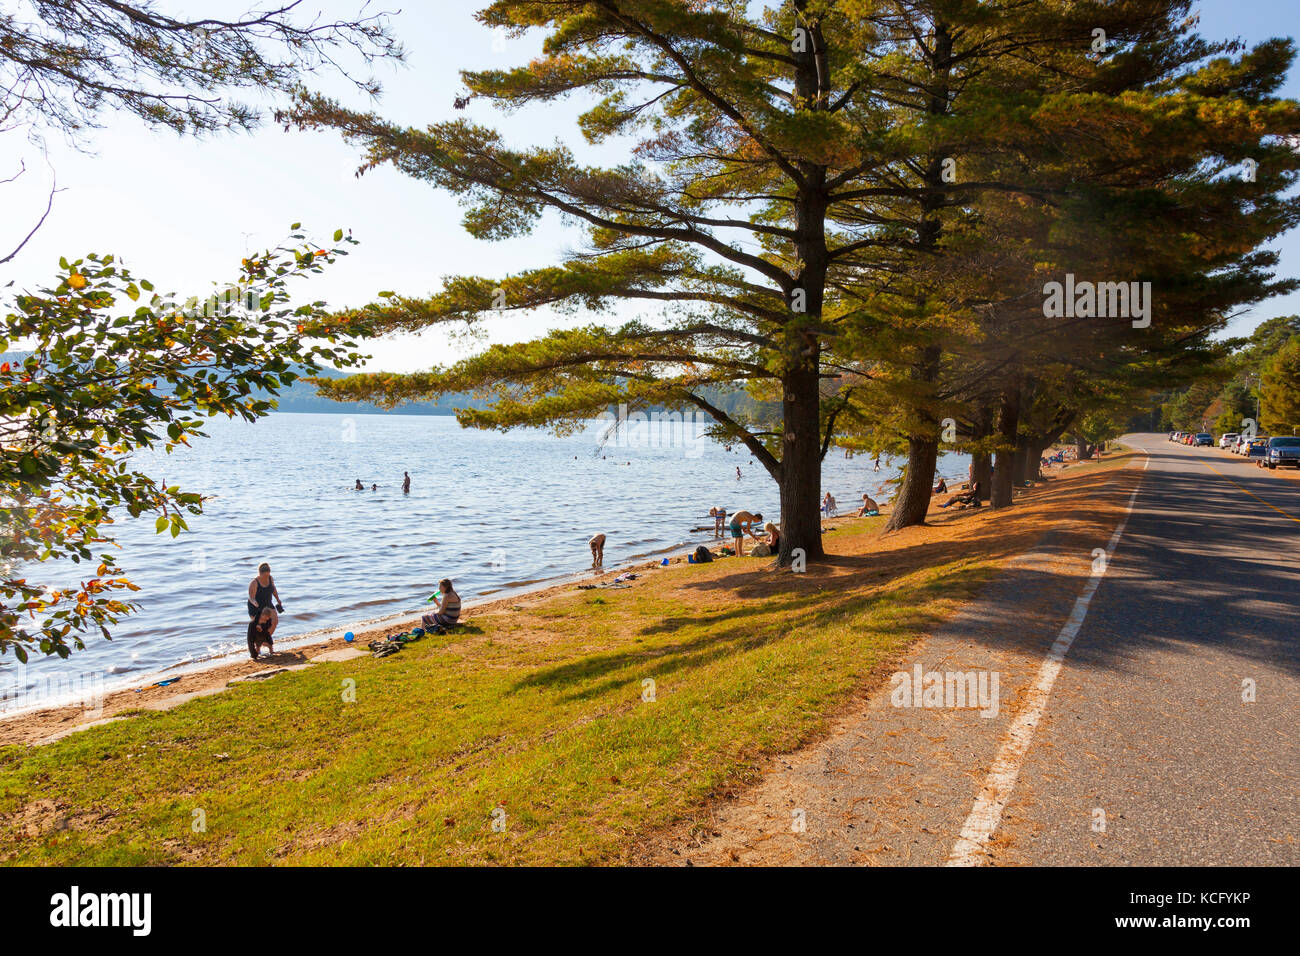 Canada,Ontario,Huntsville,Dwight, Dwight Beach sommer playground in Ontario's North in Cottage Country on Lake - Stock Image